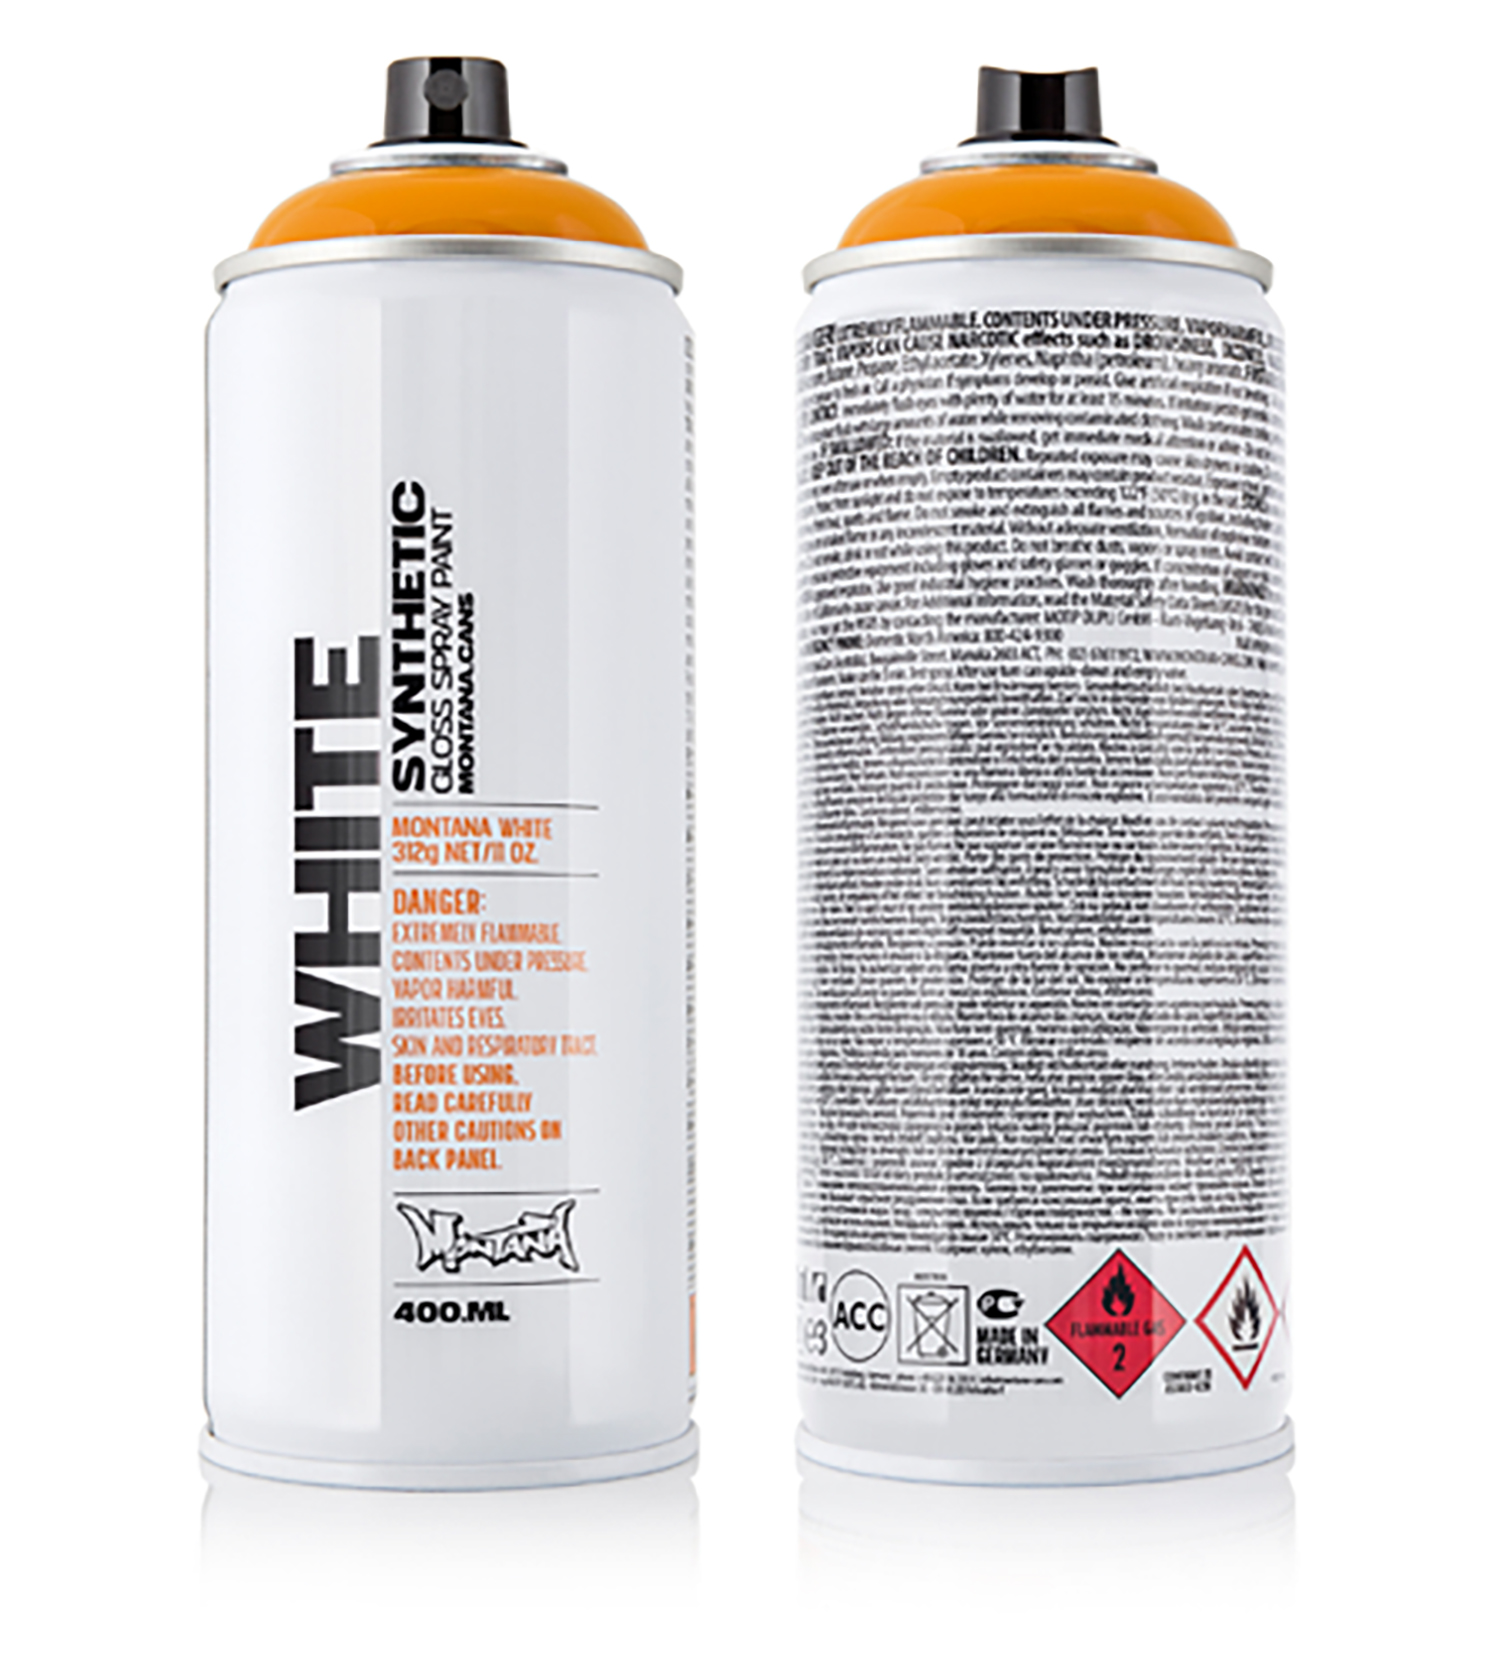 MONTANA-WHITE-SPRAY-400ML-2060